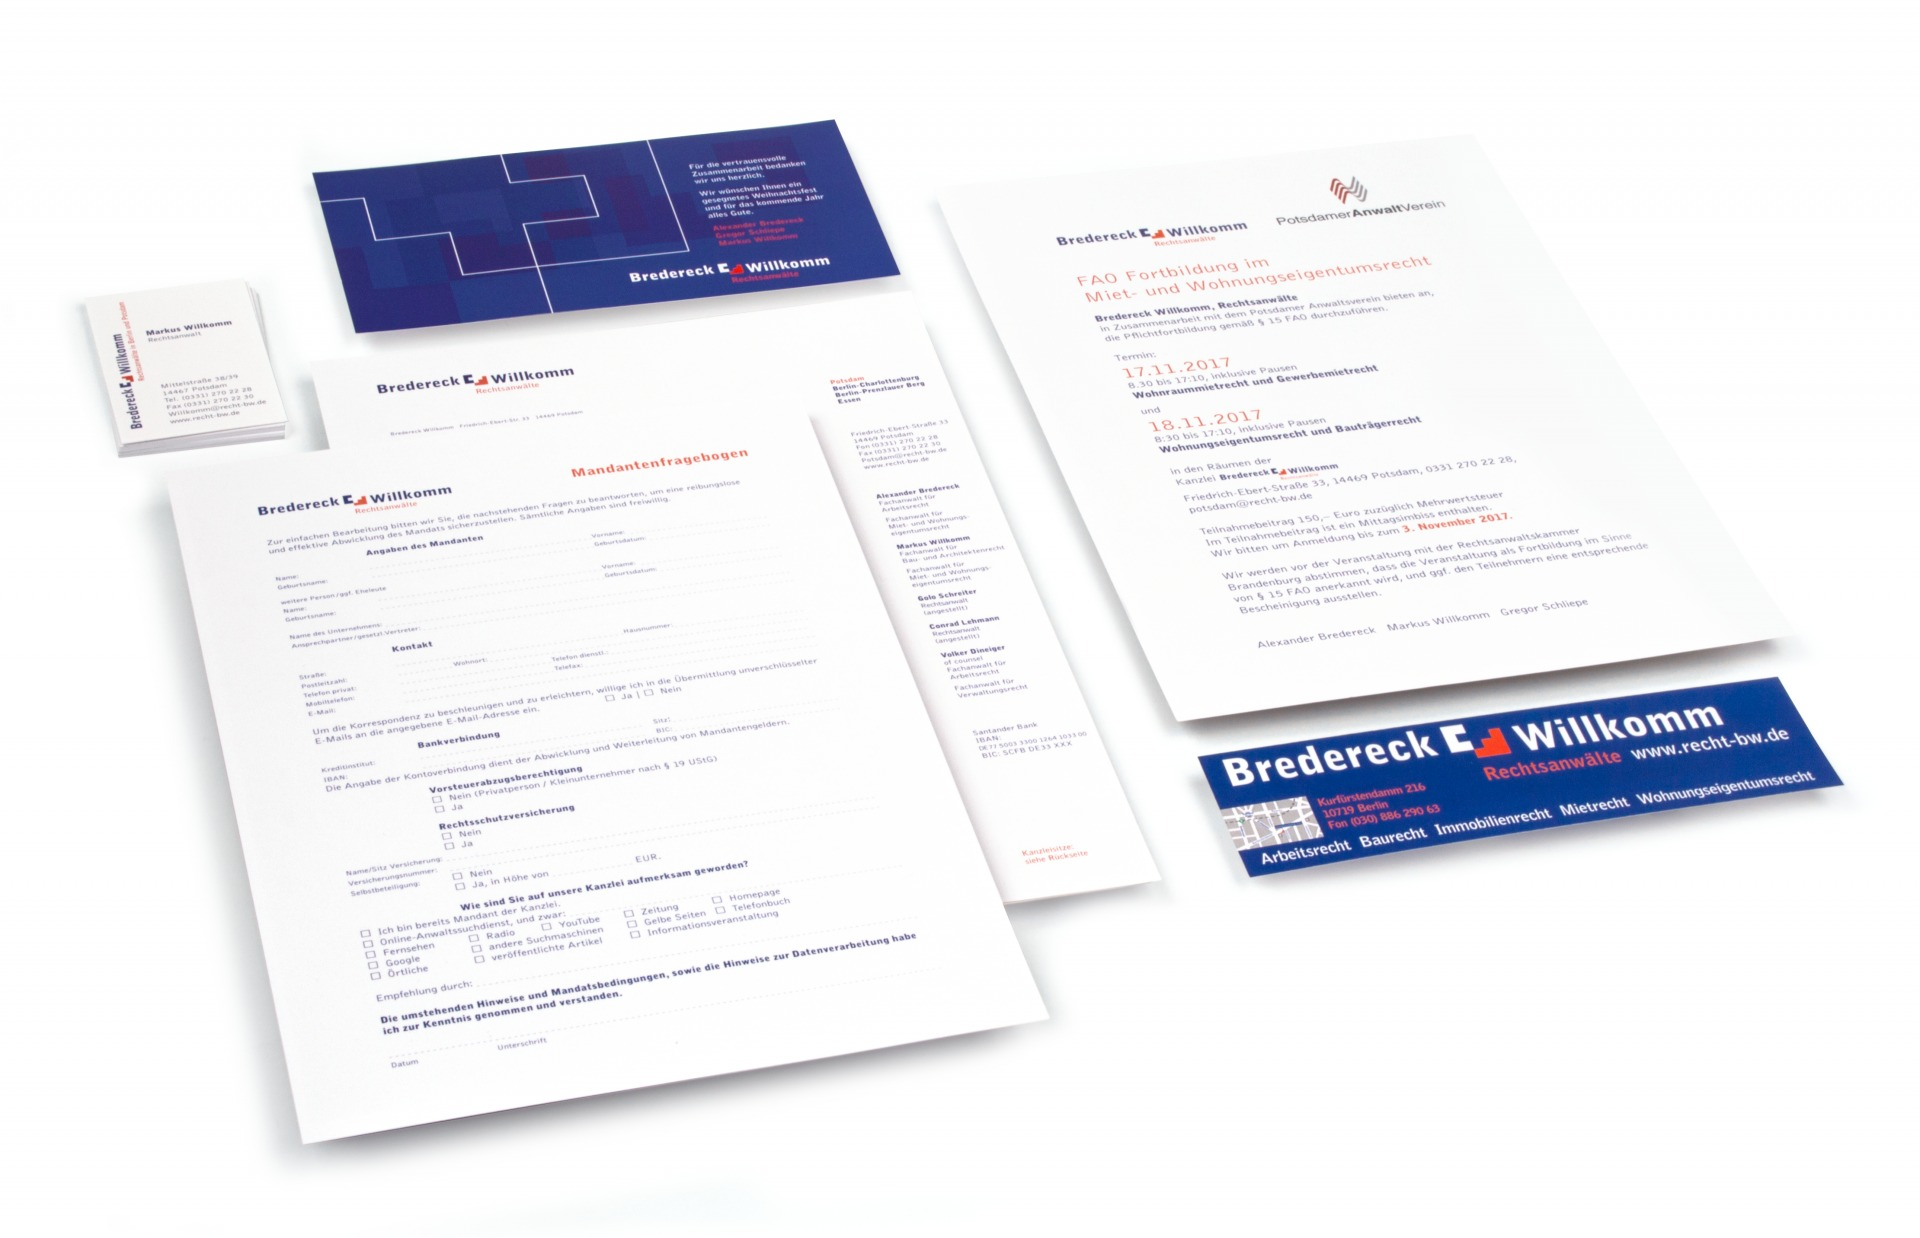 corporatedesign-bundw-geschaeftsausstattung-copyright-typoly